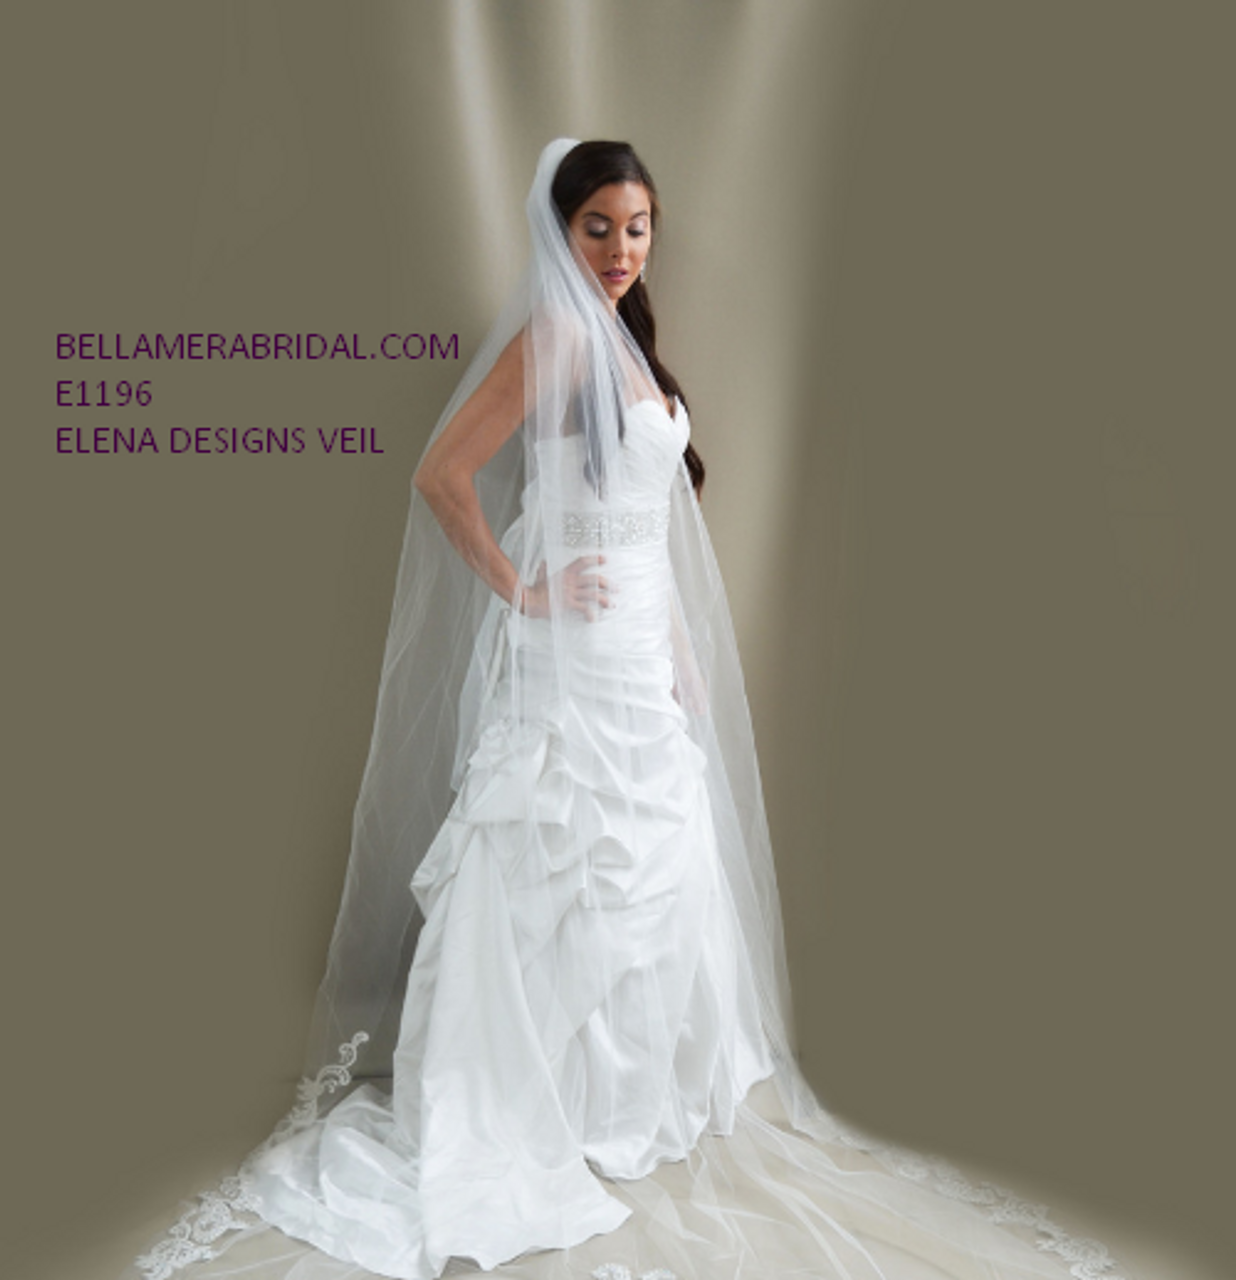 Elena Designs Wedding Veil Style E1196L -188 inches long - Royal Cathedral Beaded Lace edge veil